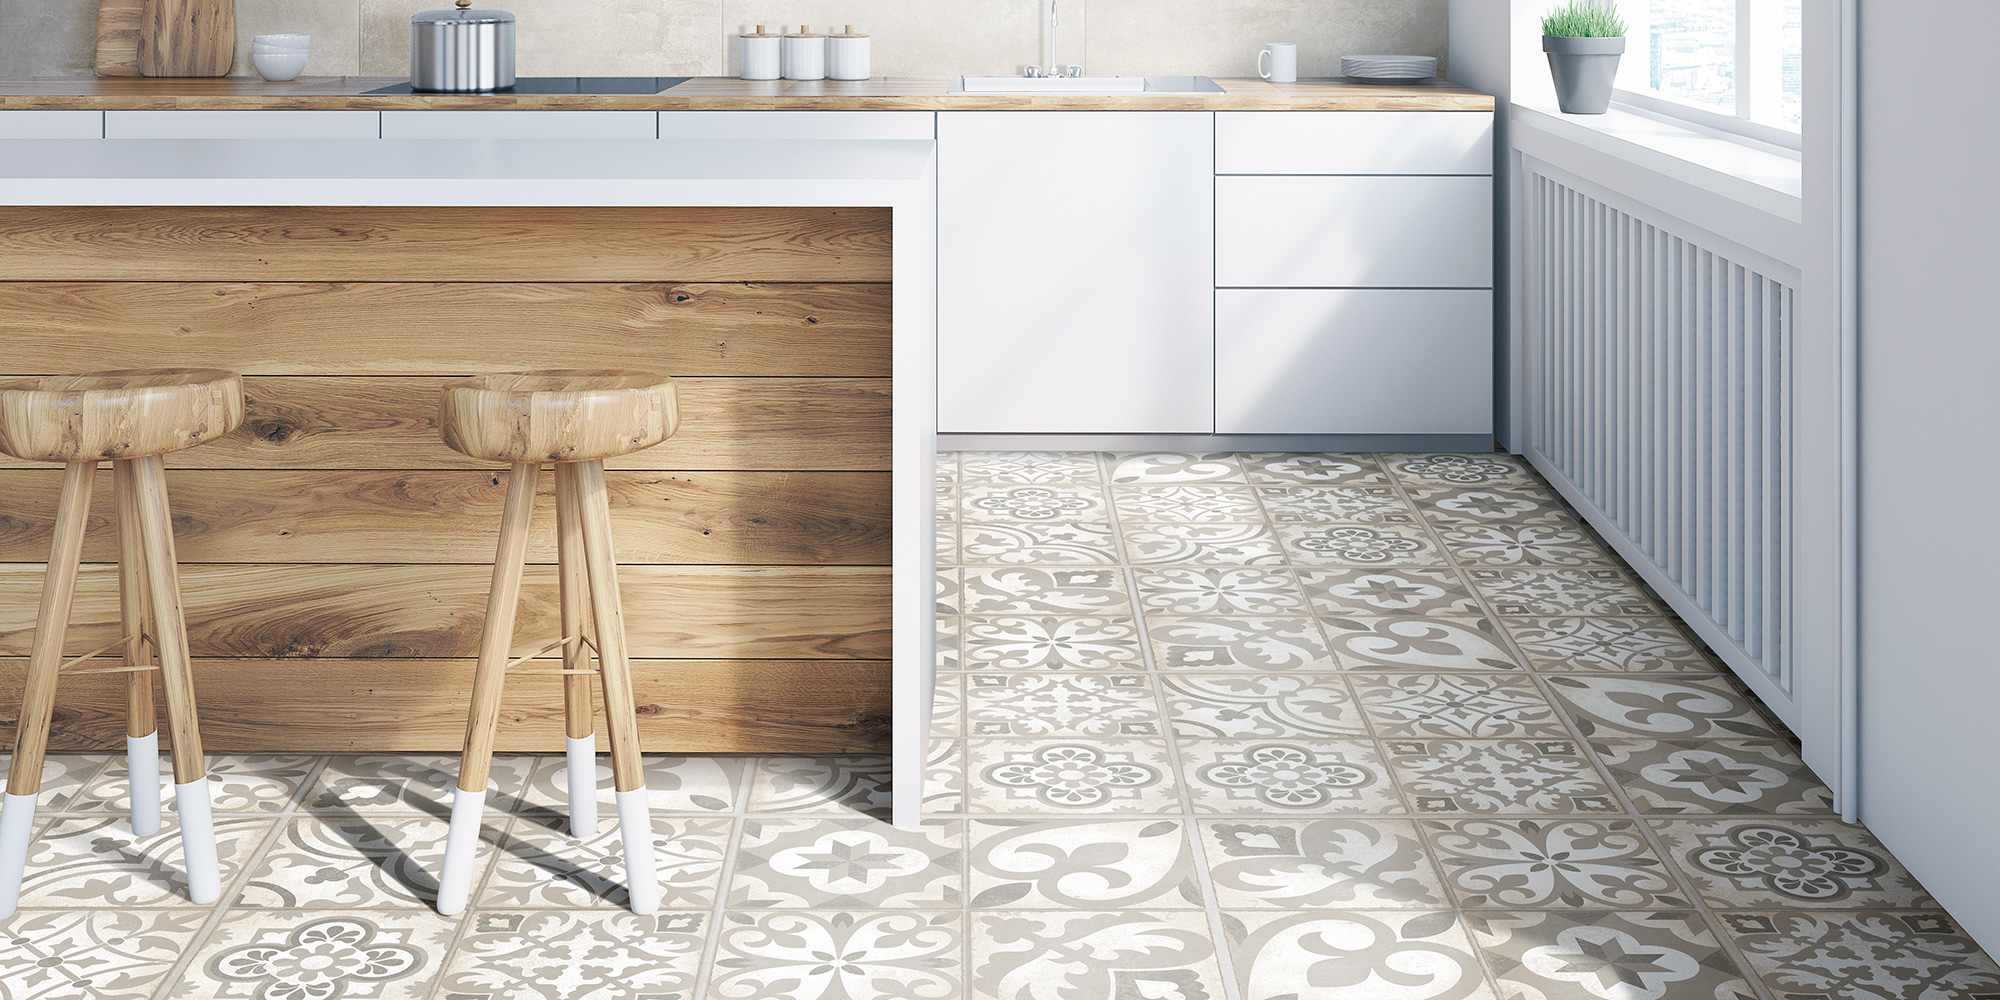 Combi 30x30. Vintage style patterned floor tiles.